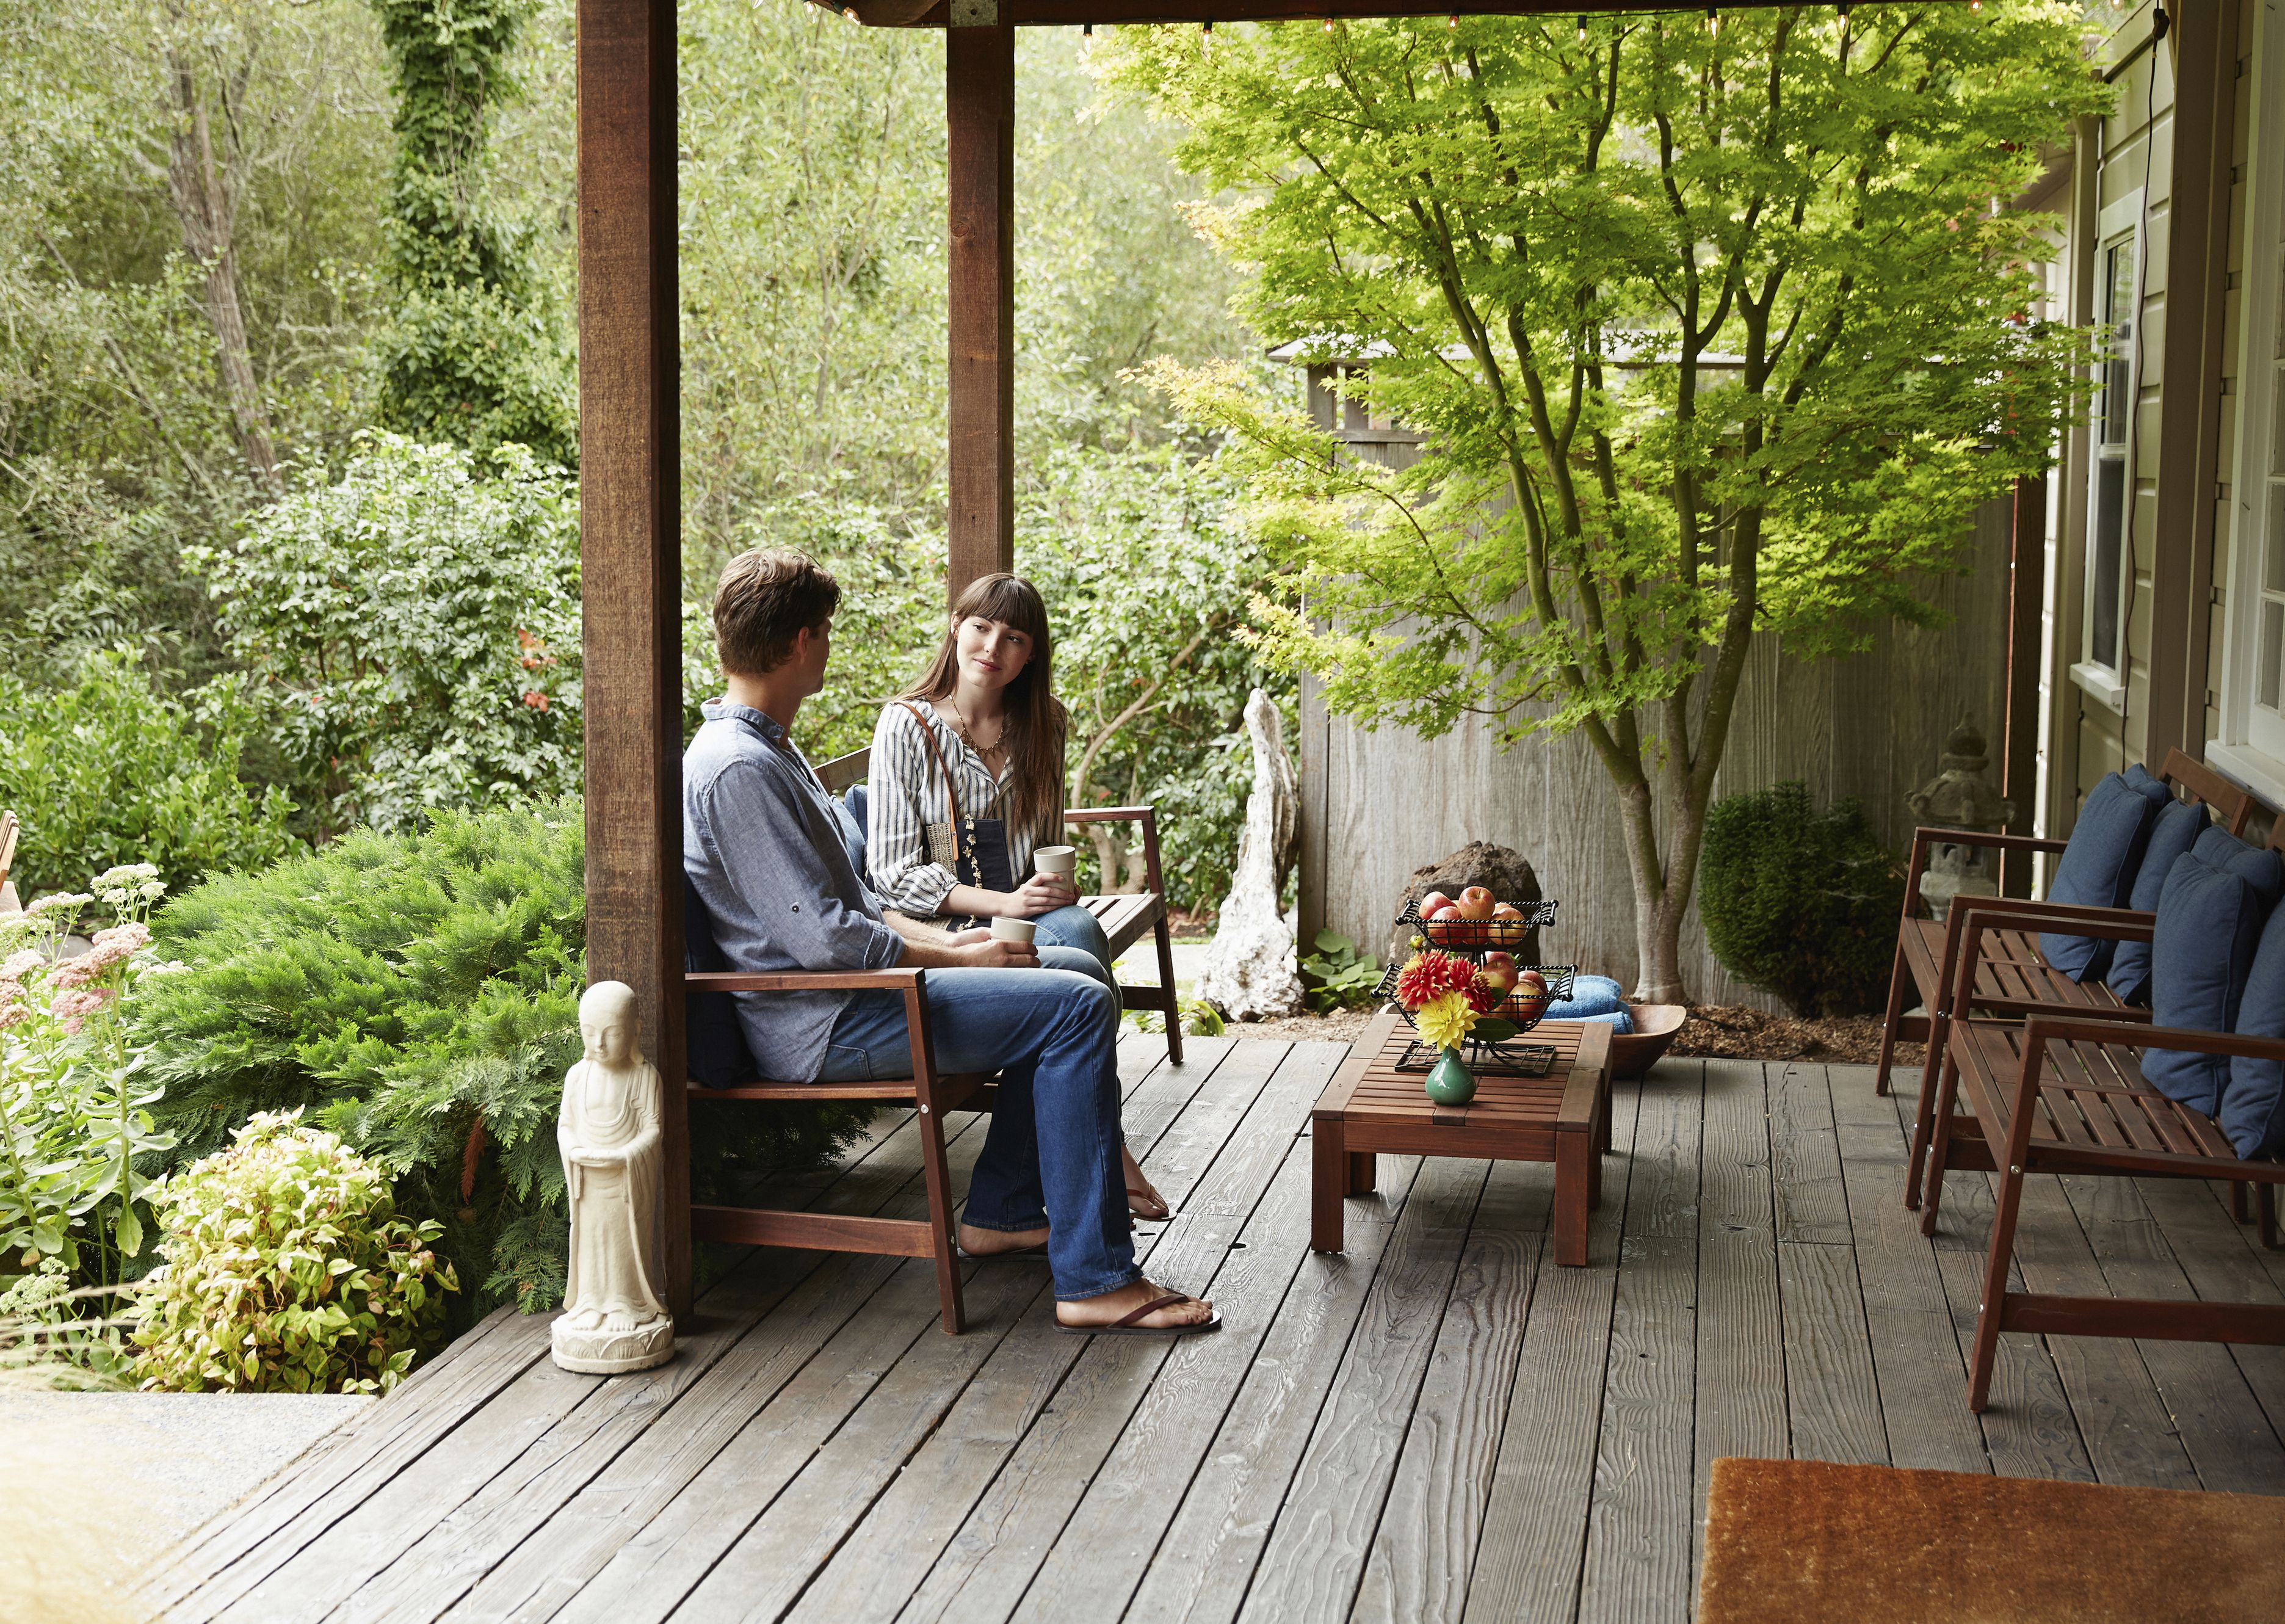 Best Patio Furniture Of 2019 - Why-wicker-patio-furniture-is-the-best-choice-for-your-outdoor-needs